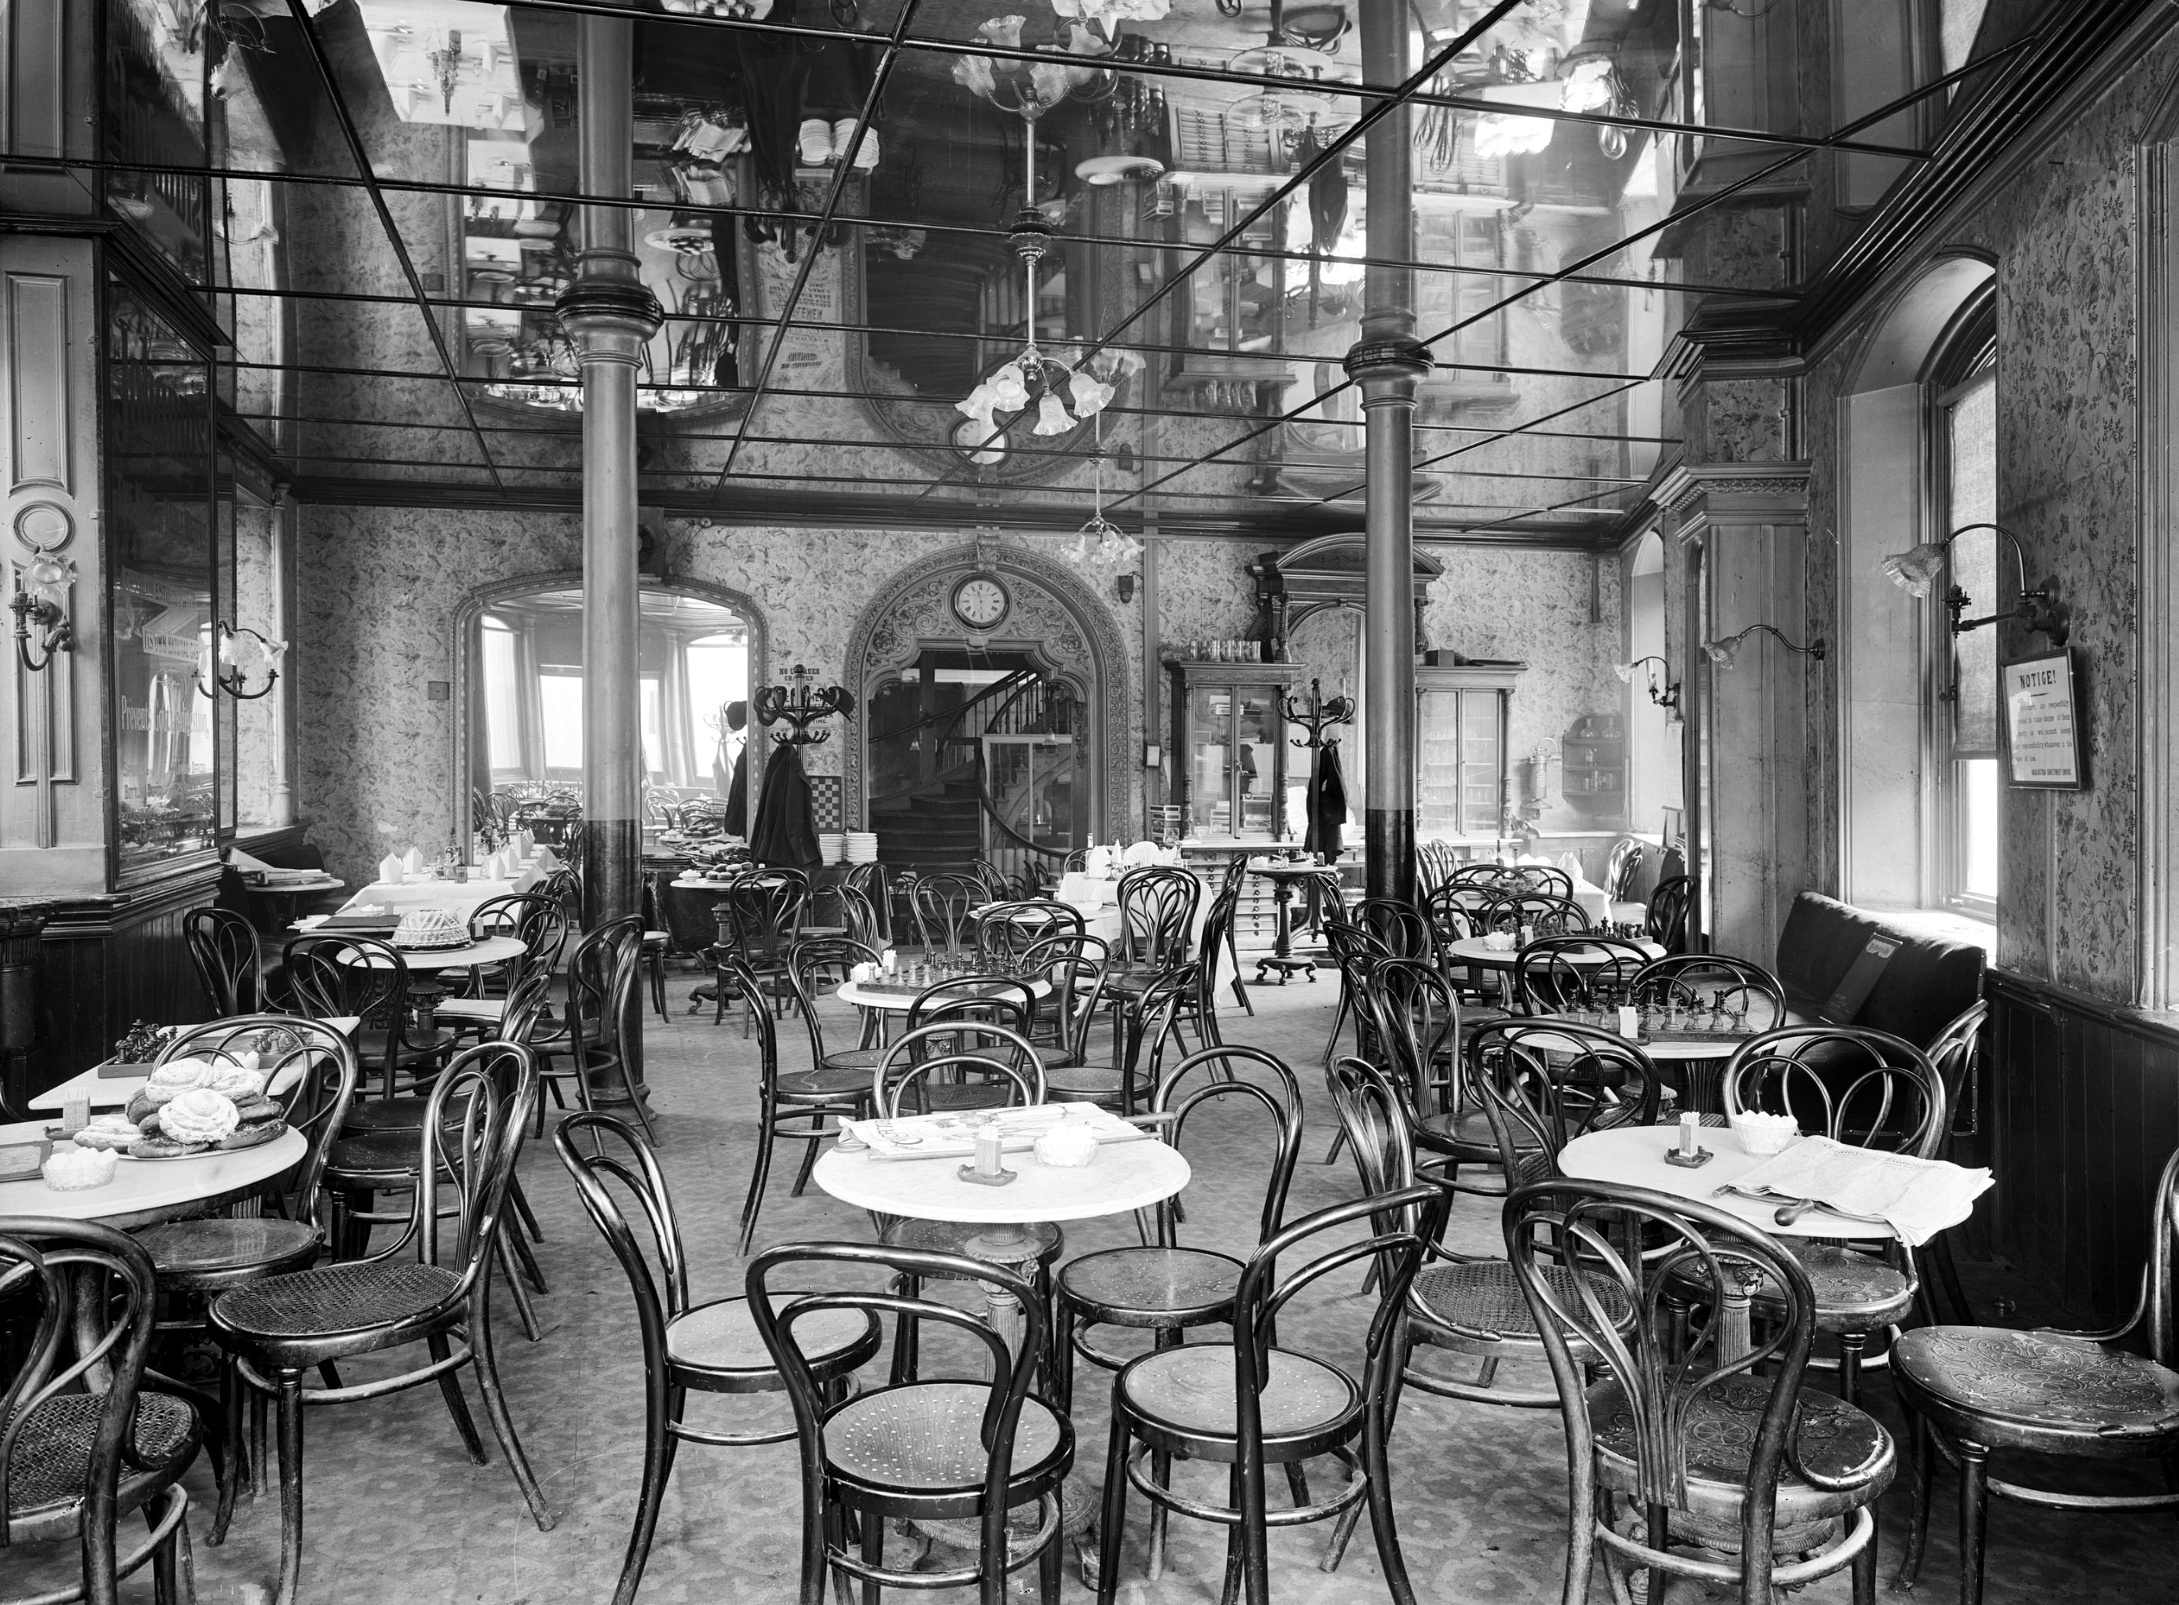 Vienna Café, 24–28 Oxford Street, London, Adolphe Augustus Boucher (1868–1937), Bedford Lemere and Company - https://historicengland.org.uk/images-books/photos/item/BL14069/003, Created: 29 April 1897